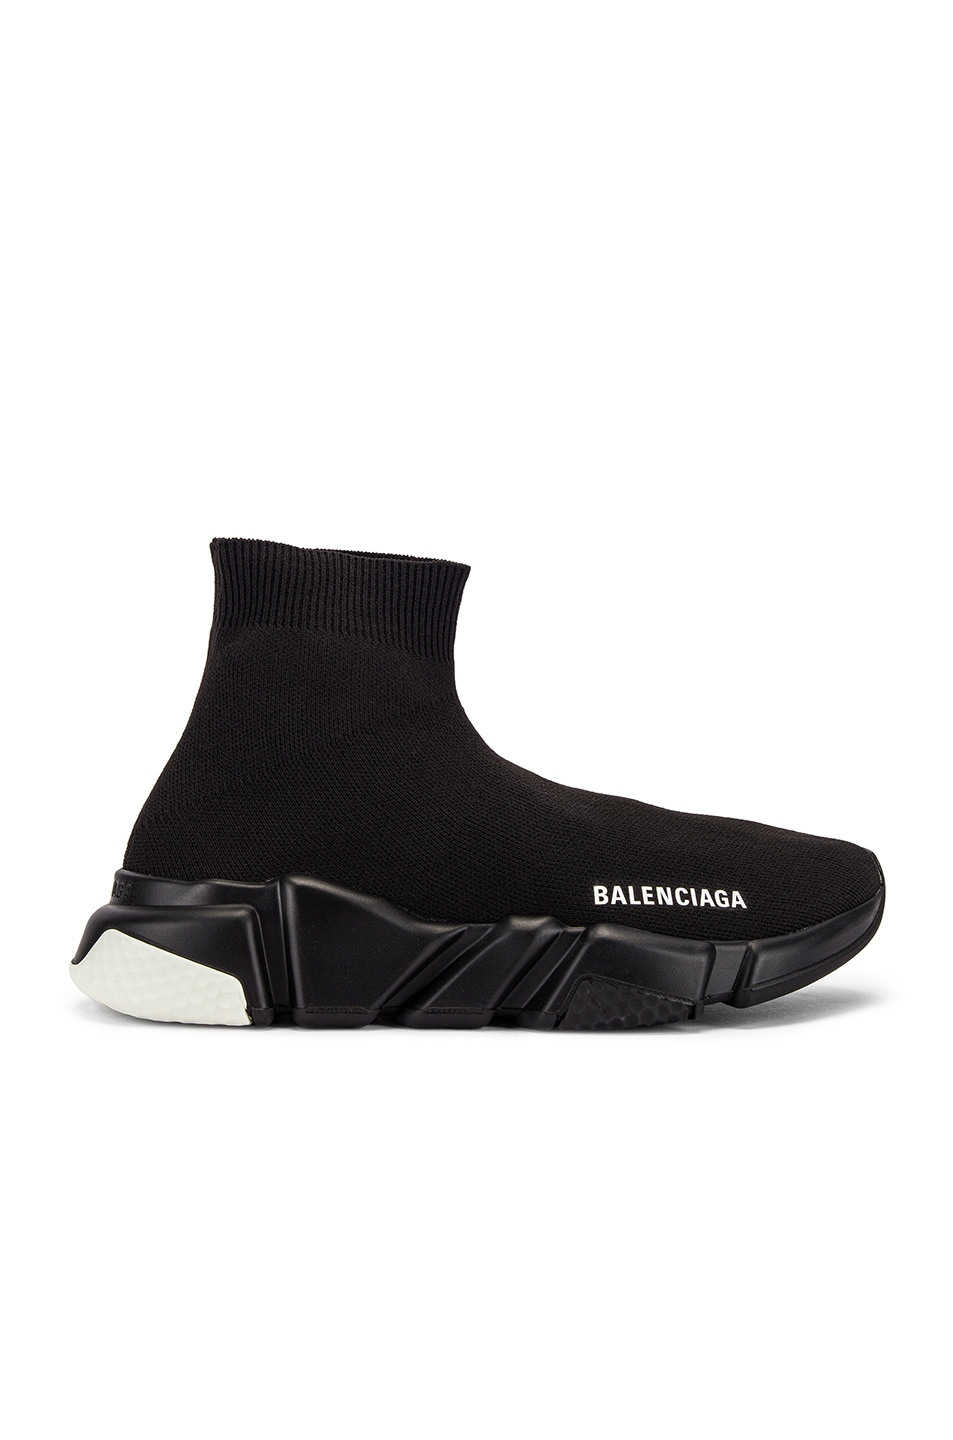 Balenciaga Knits Speed Knit Sneakers